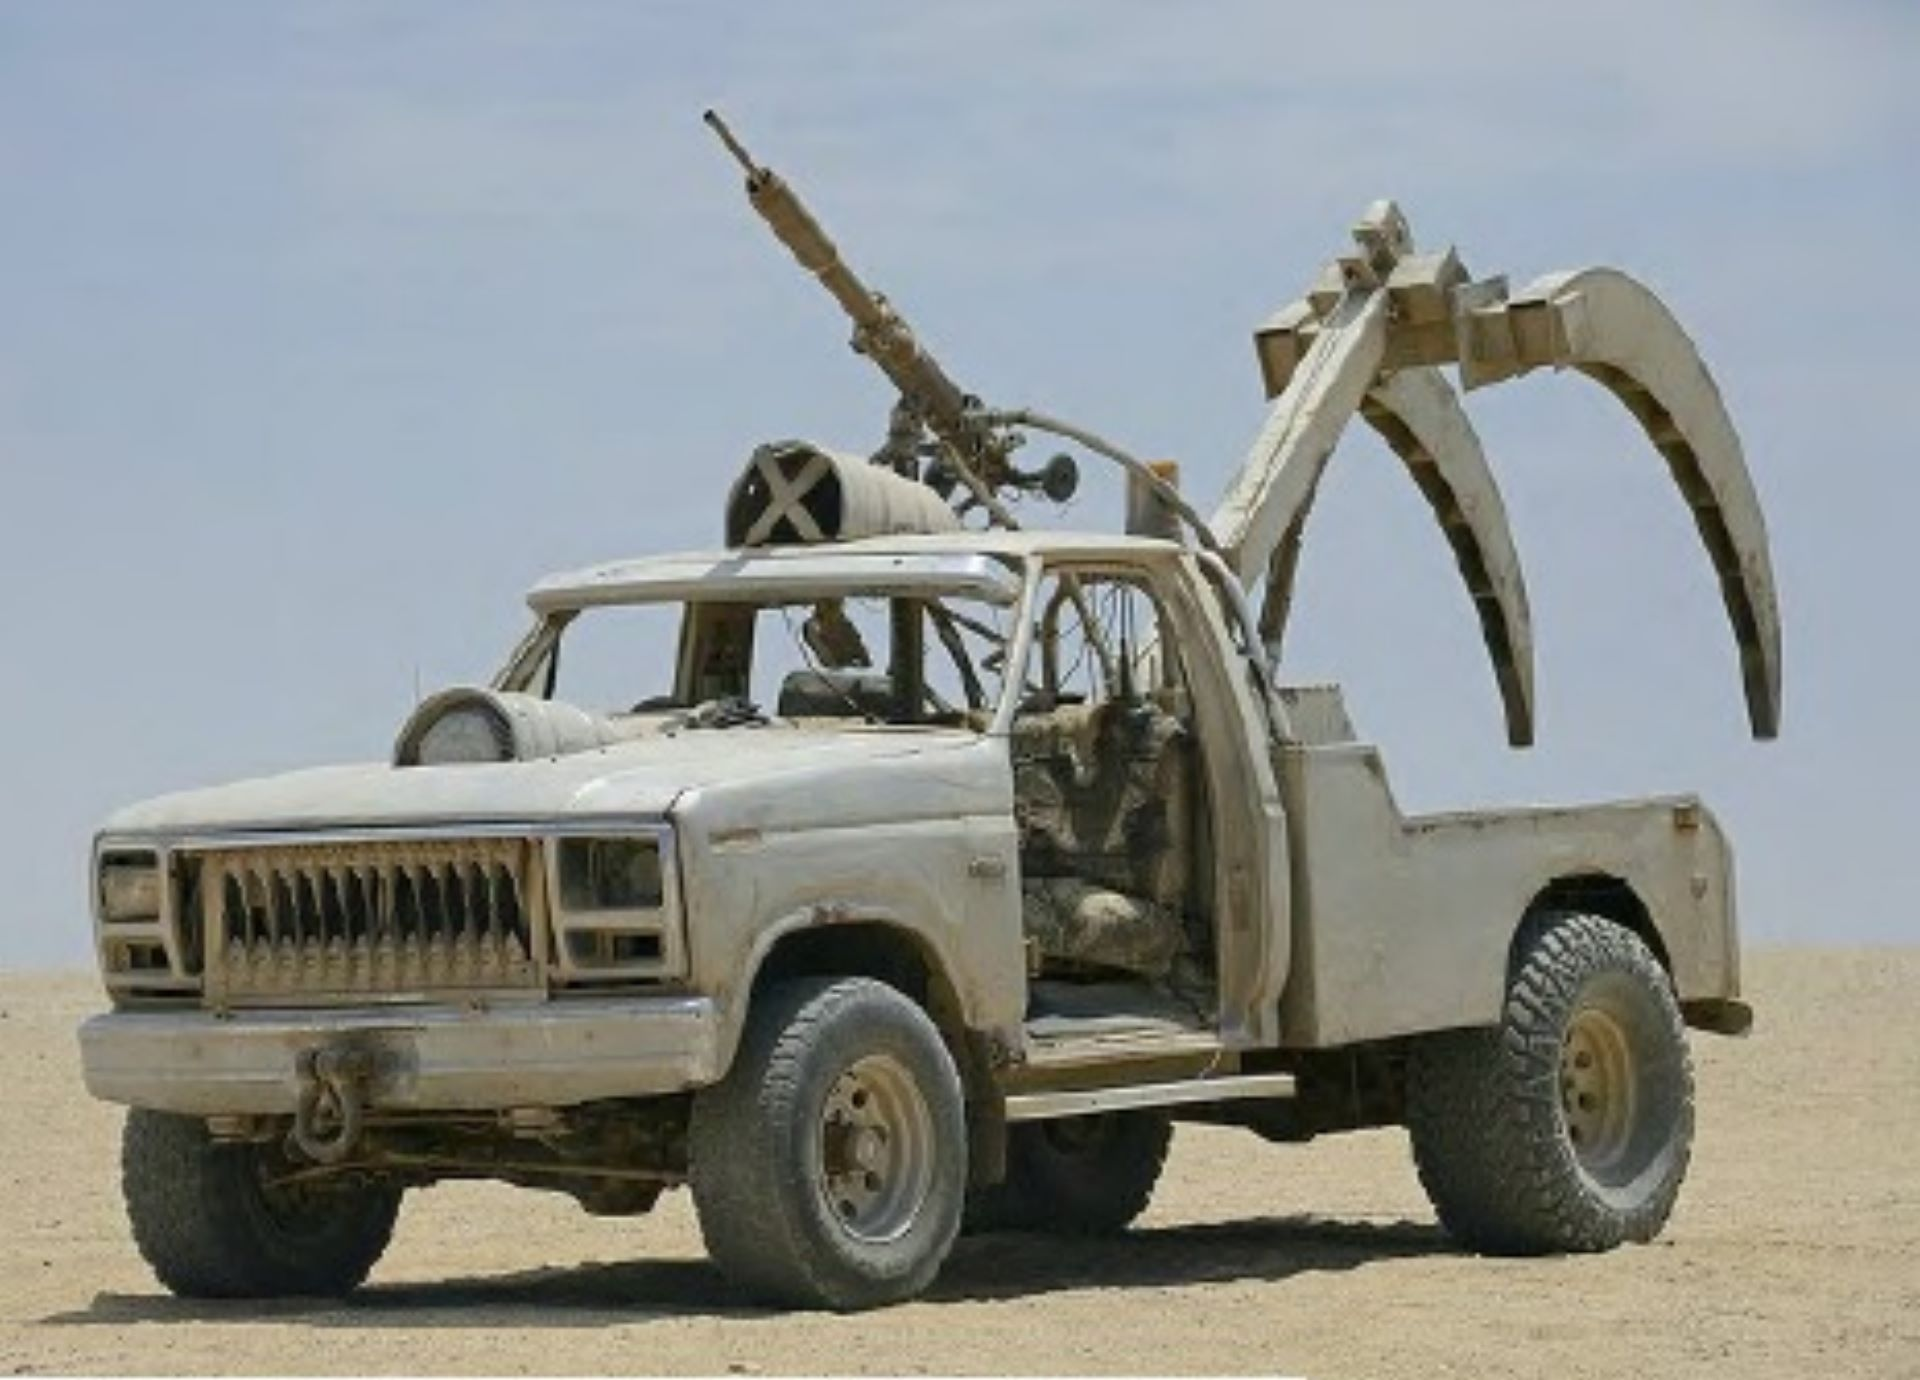 Mad-Max-Fury-Road-cars-for-sale-5